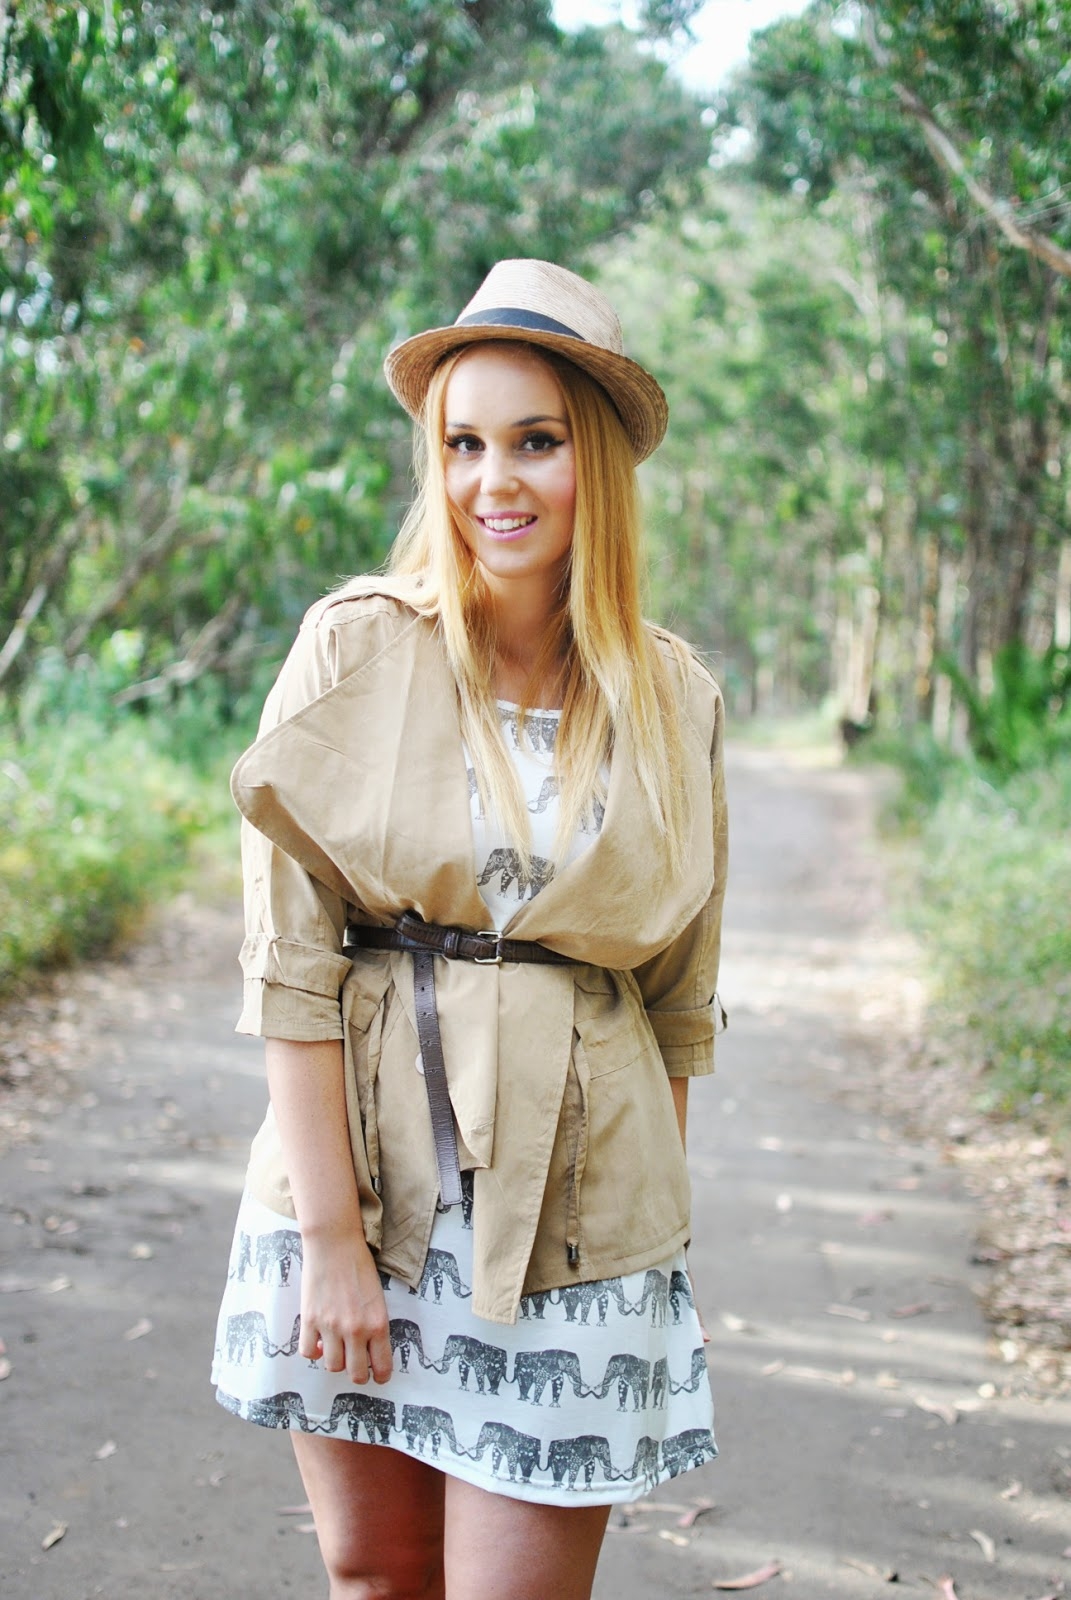 nery hdez, YRB FASHION , Cichic, trench, daniel wellington, safari look, camel loo